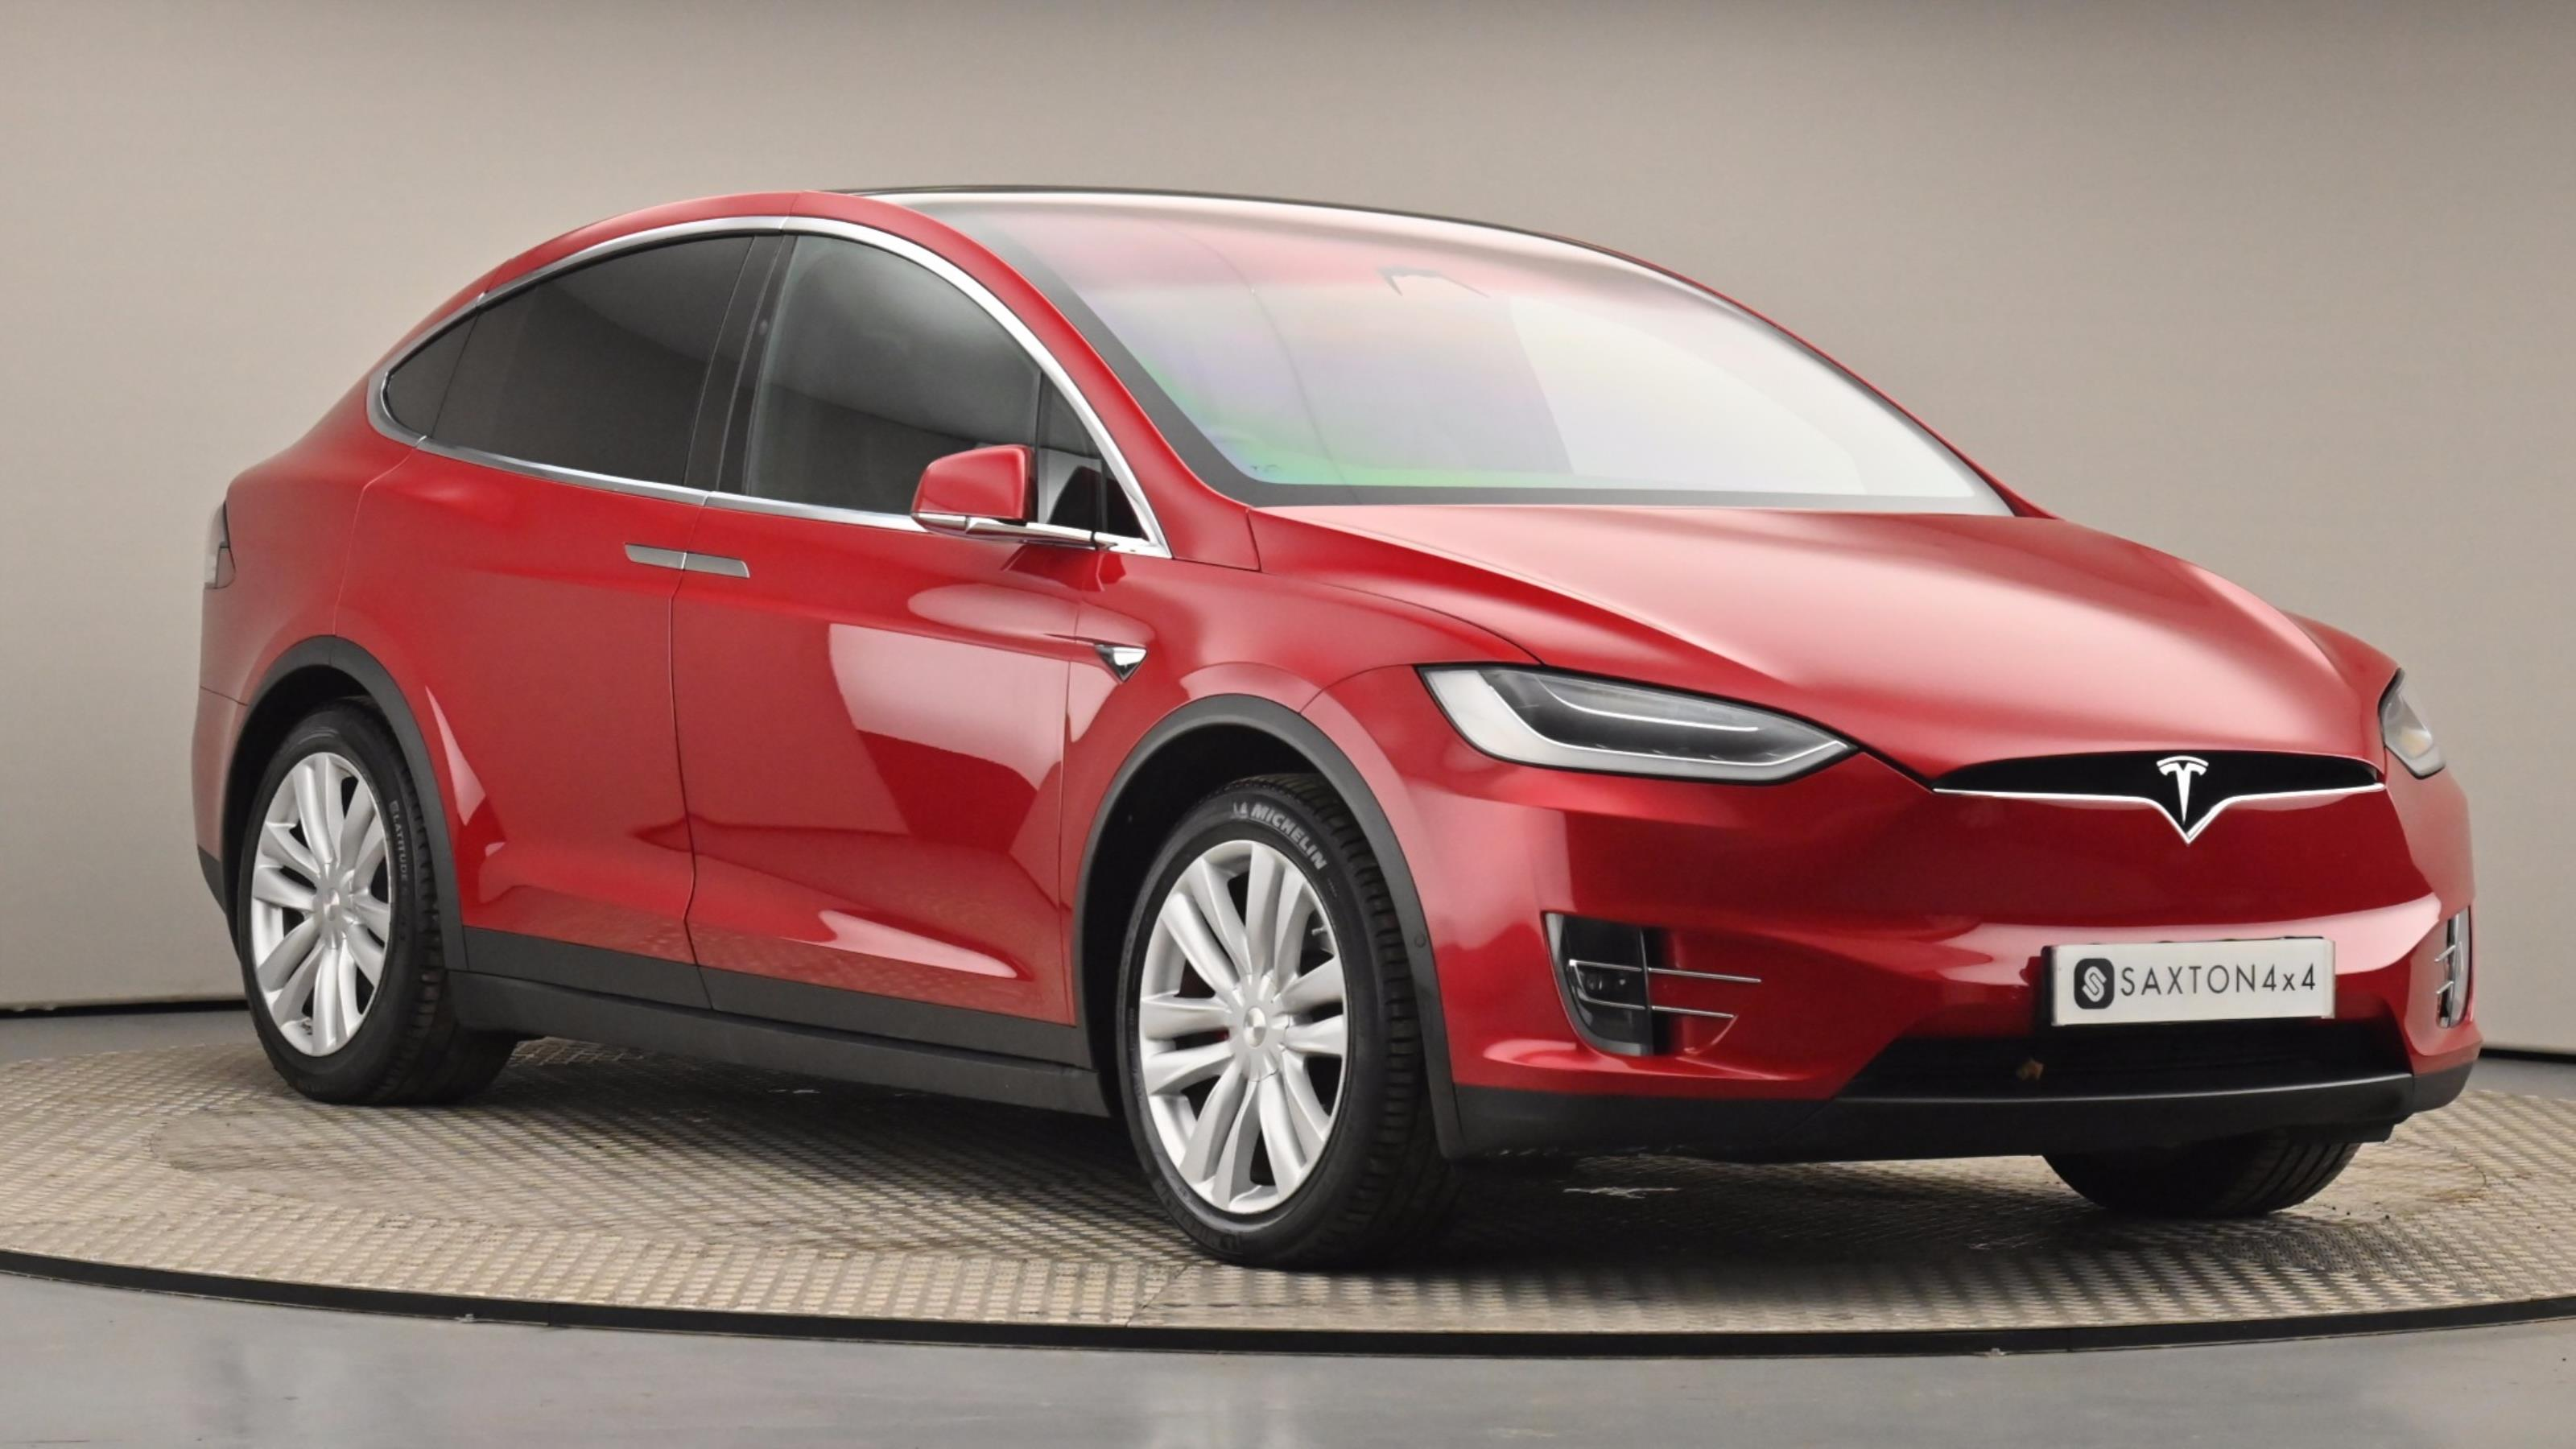 Used 2017 Tesla MODEL X 449kW 100kWh Dual Motor 5dr Auto RED at Saxton4x4